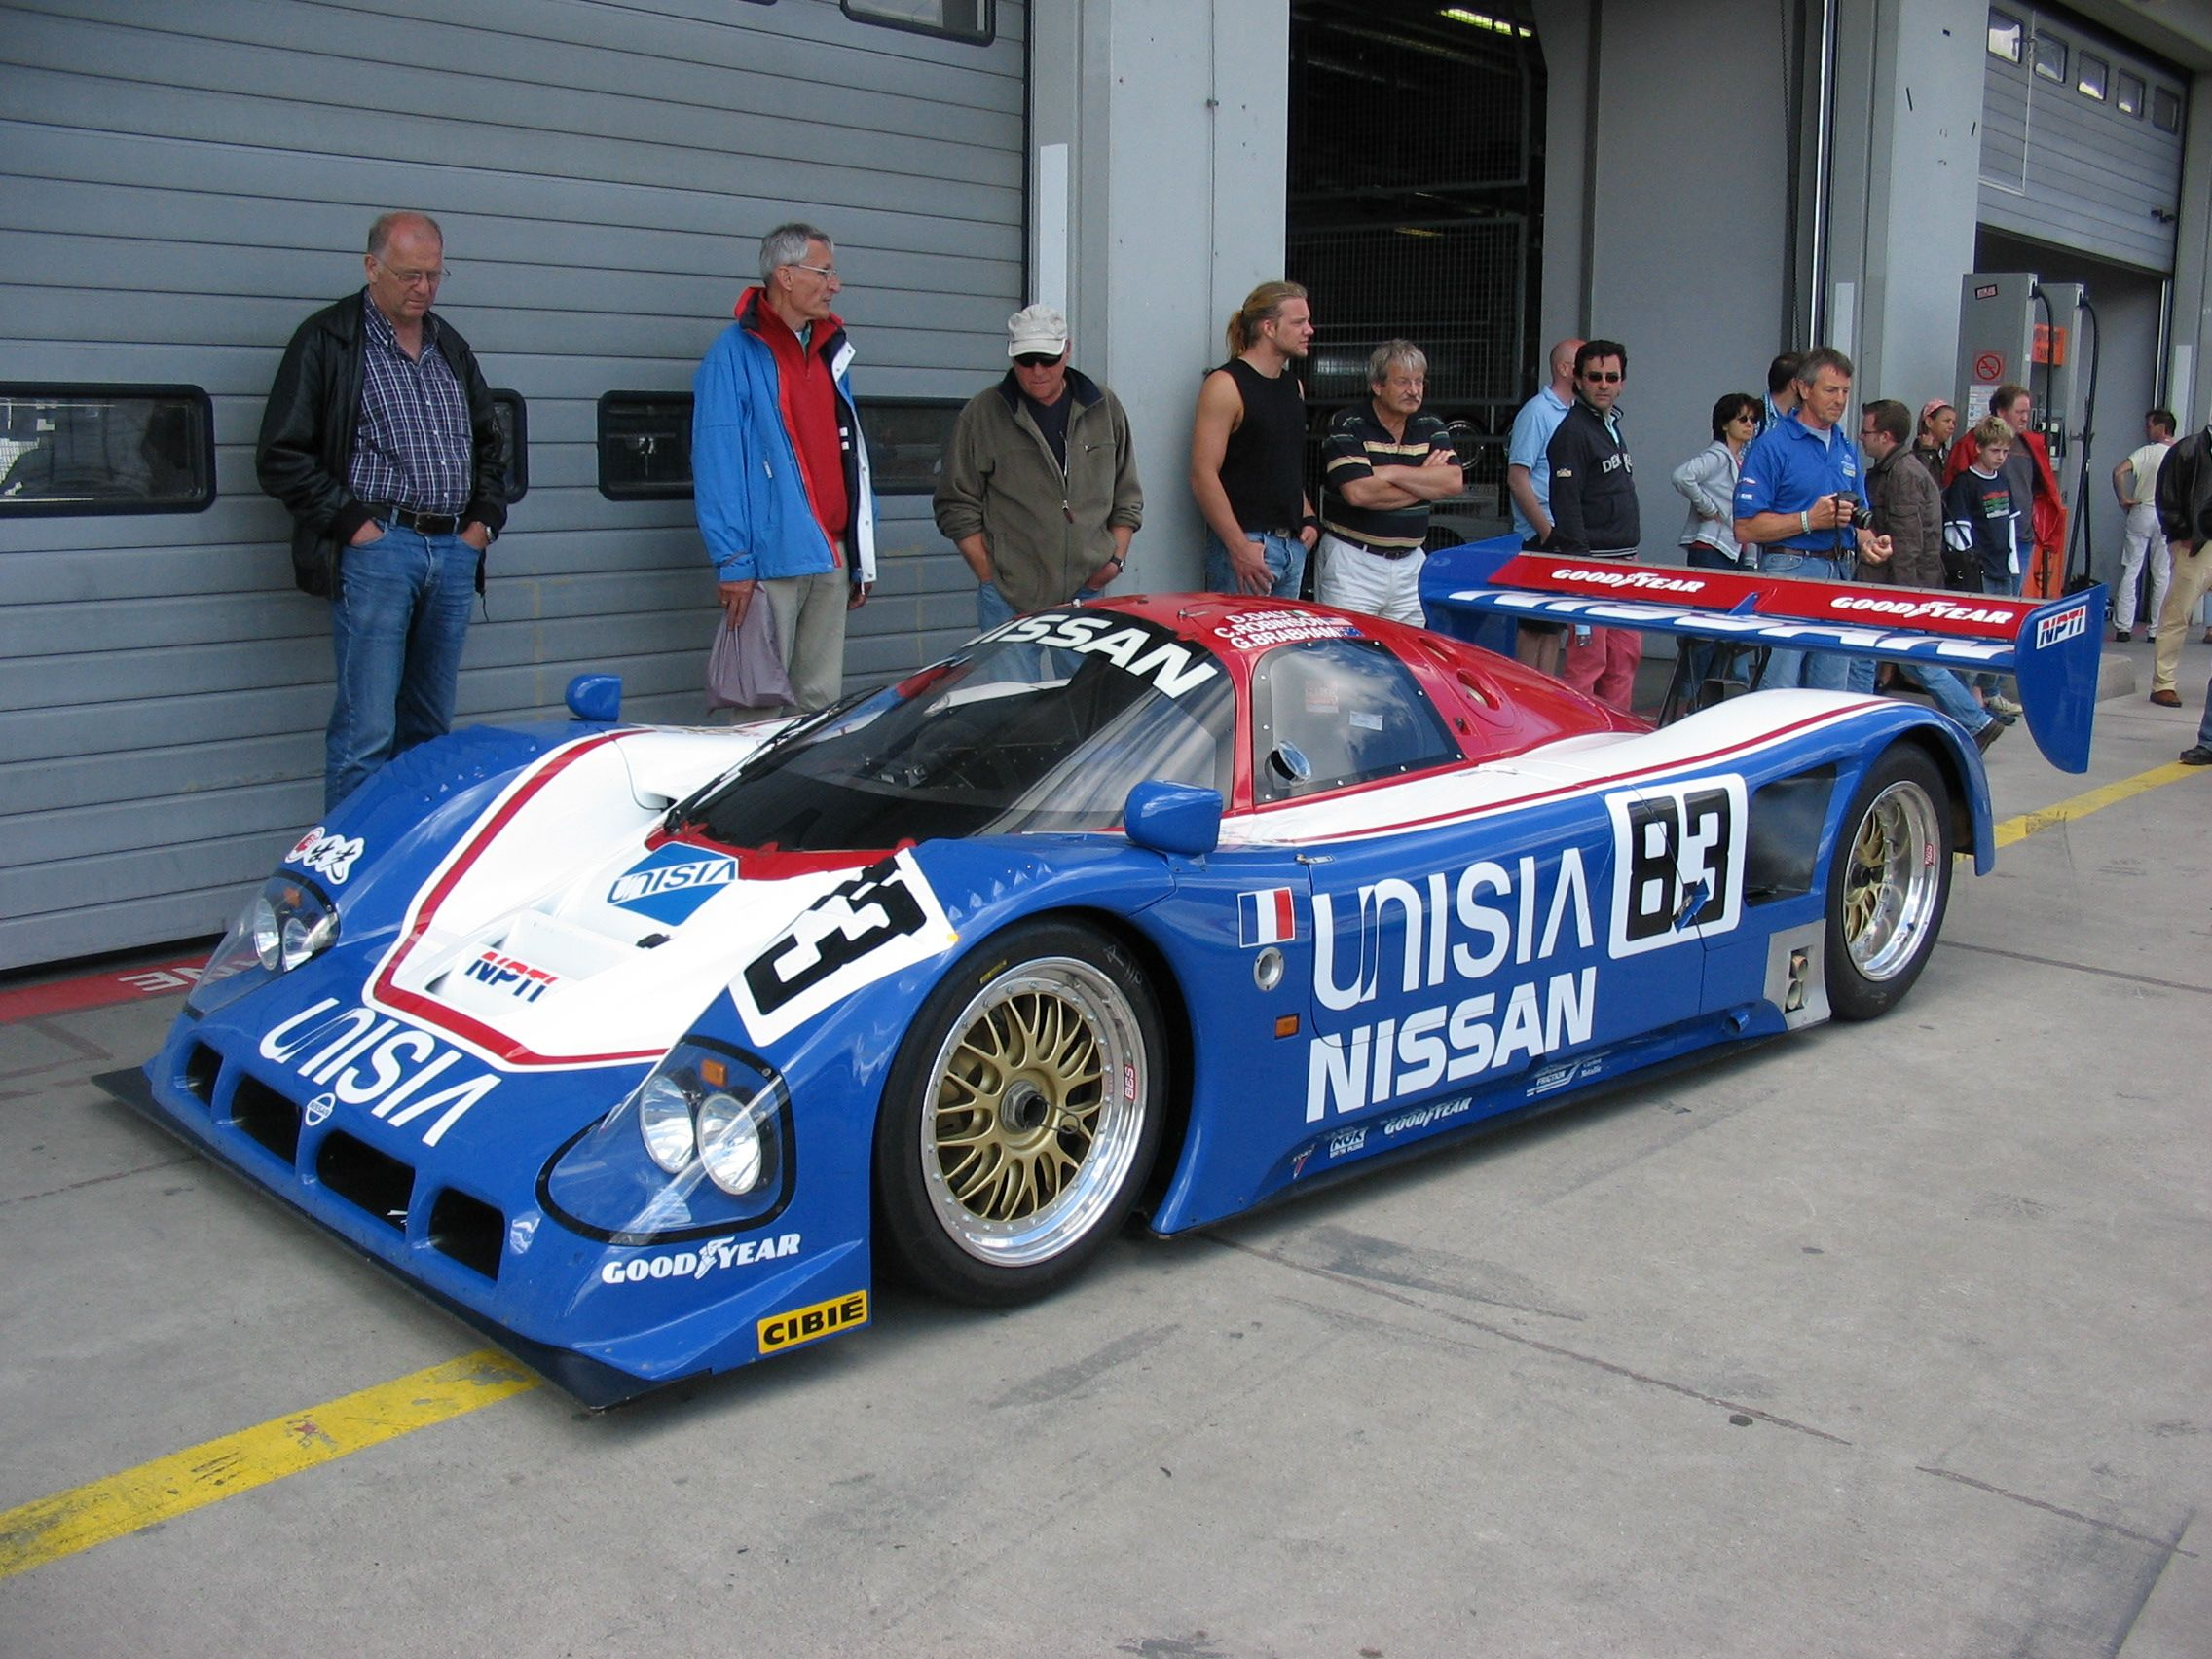 Nissan R90CK | Lemans car, Sports car, Nissan